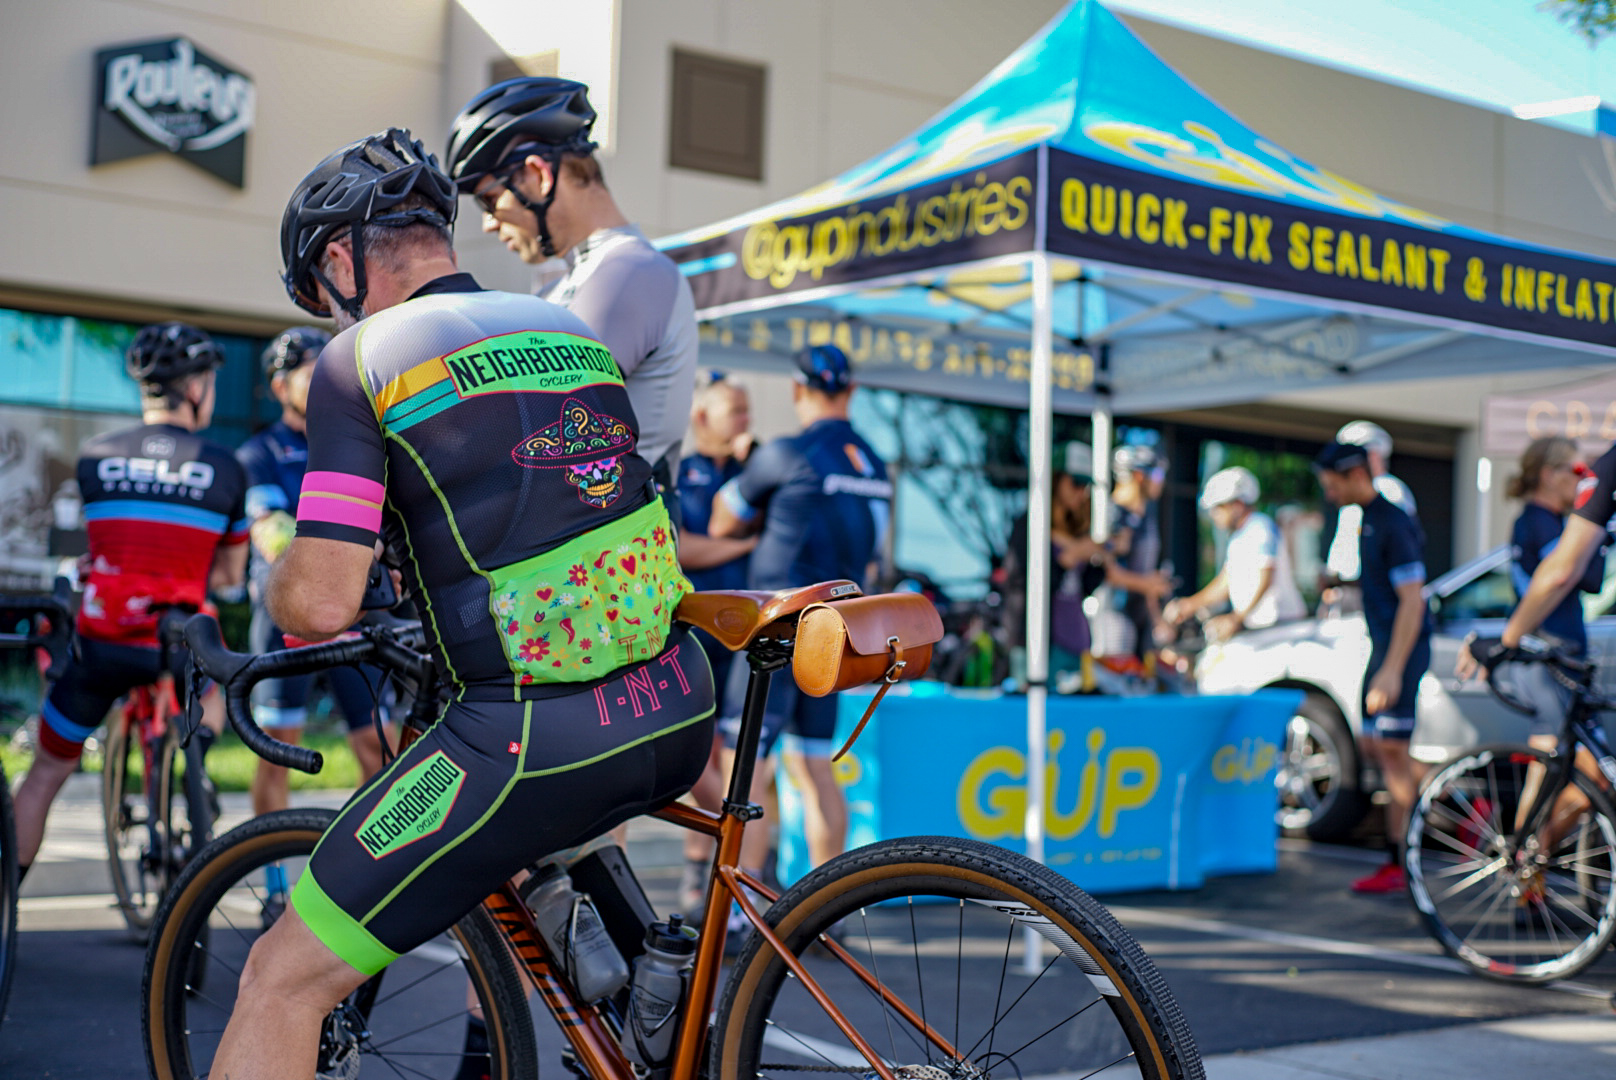 Gup Industries, one of our many sponsors, hosted the check-in and nutrition table. PC: Tony Brand